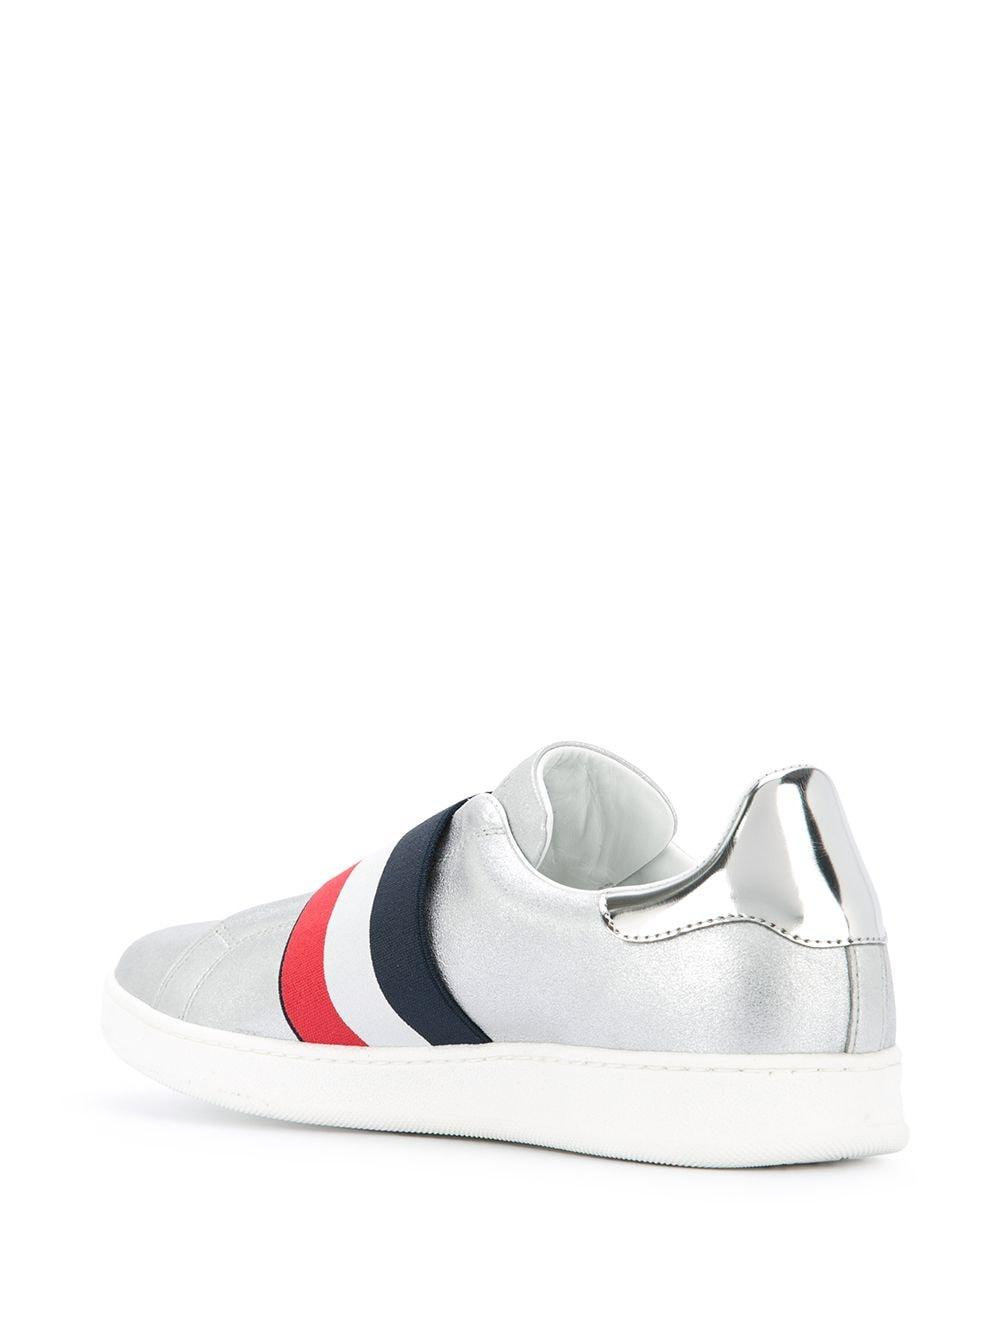 Moncler Leather Alizee Sneakers in Metallic